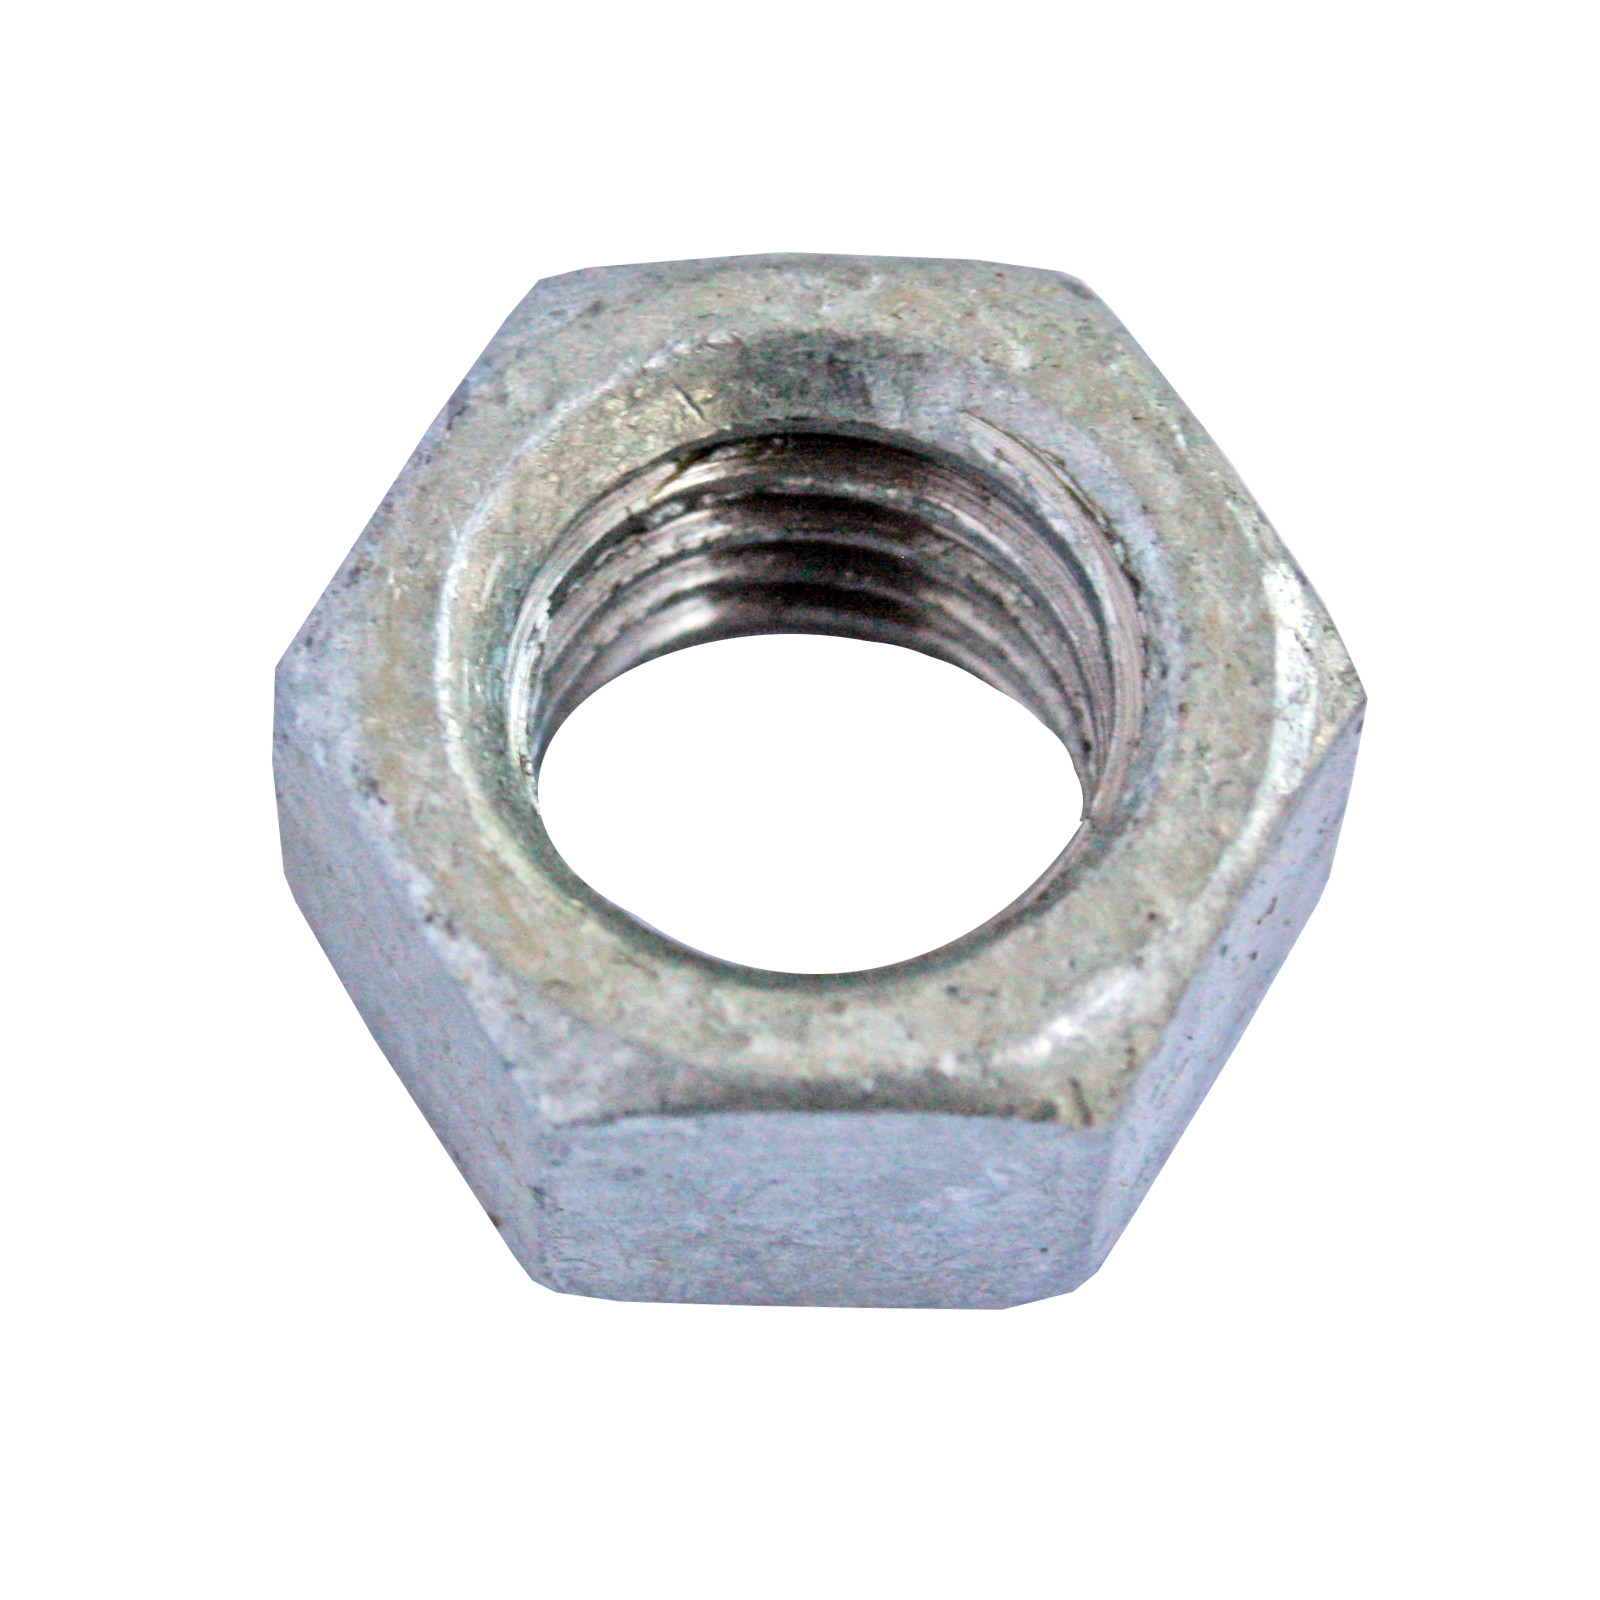 Hot Dipped Galvanized Hex Nut